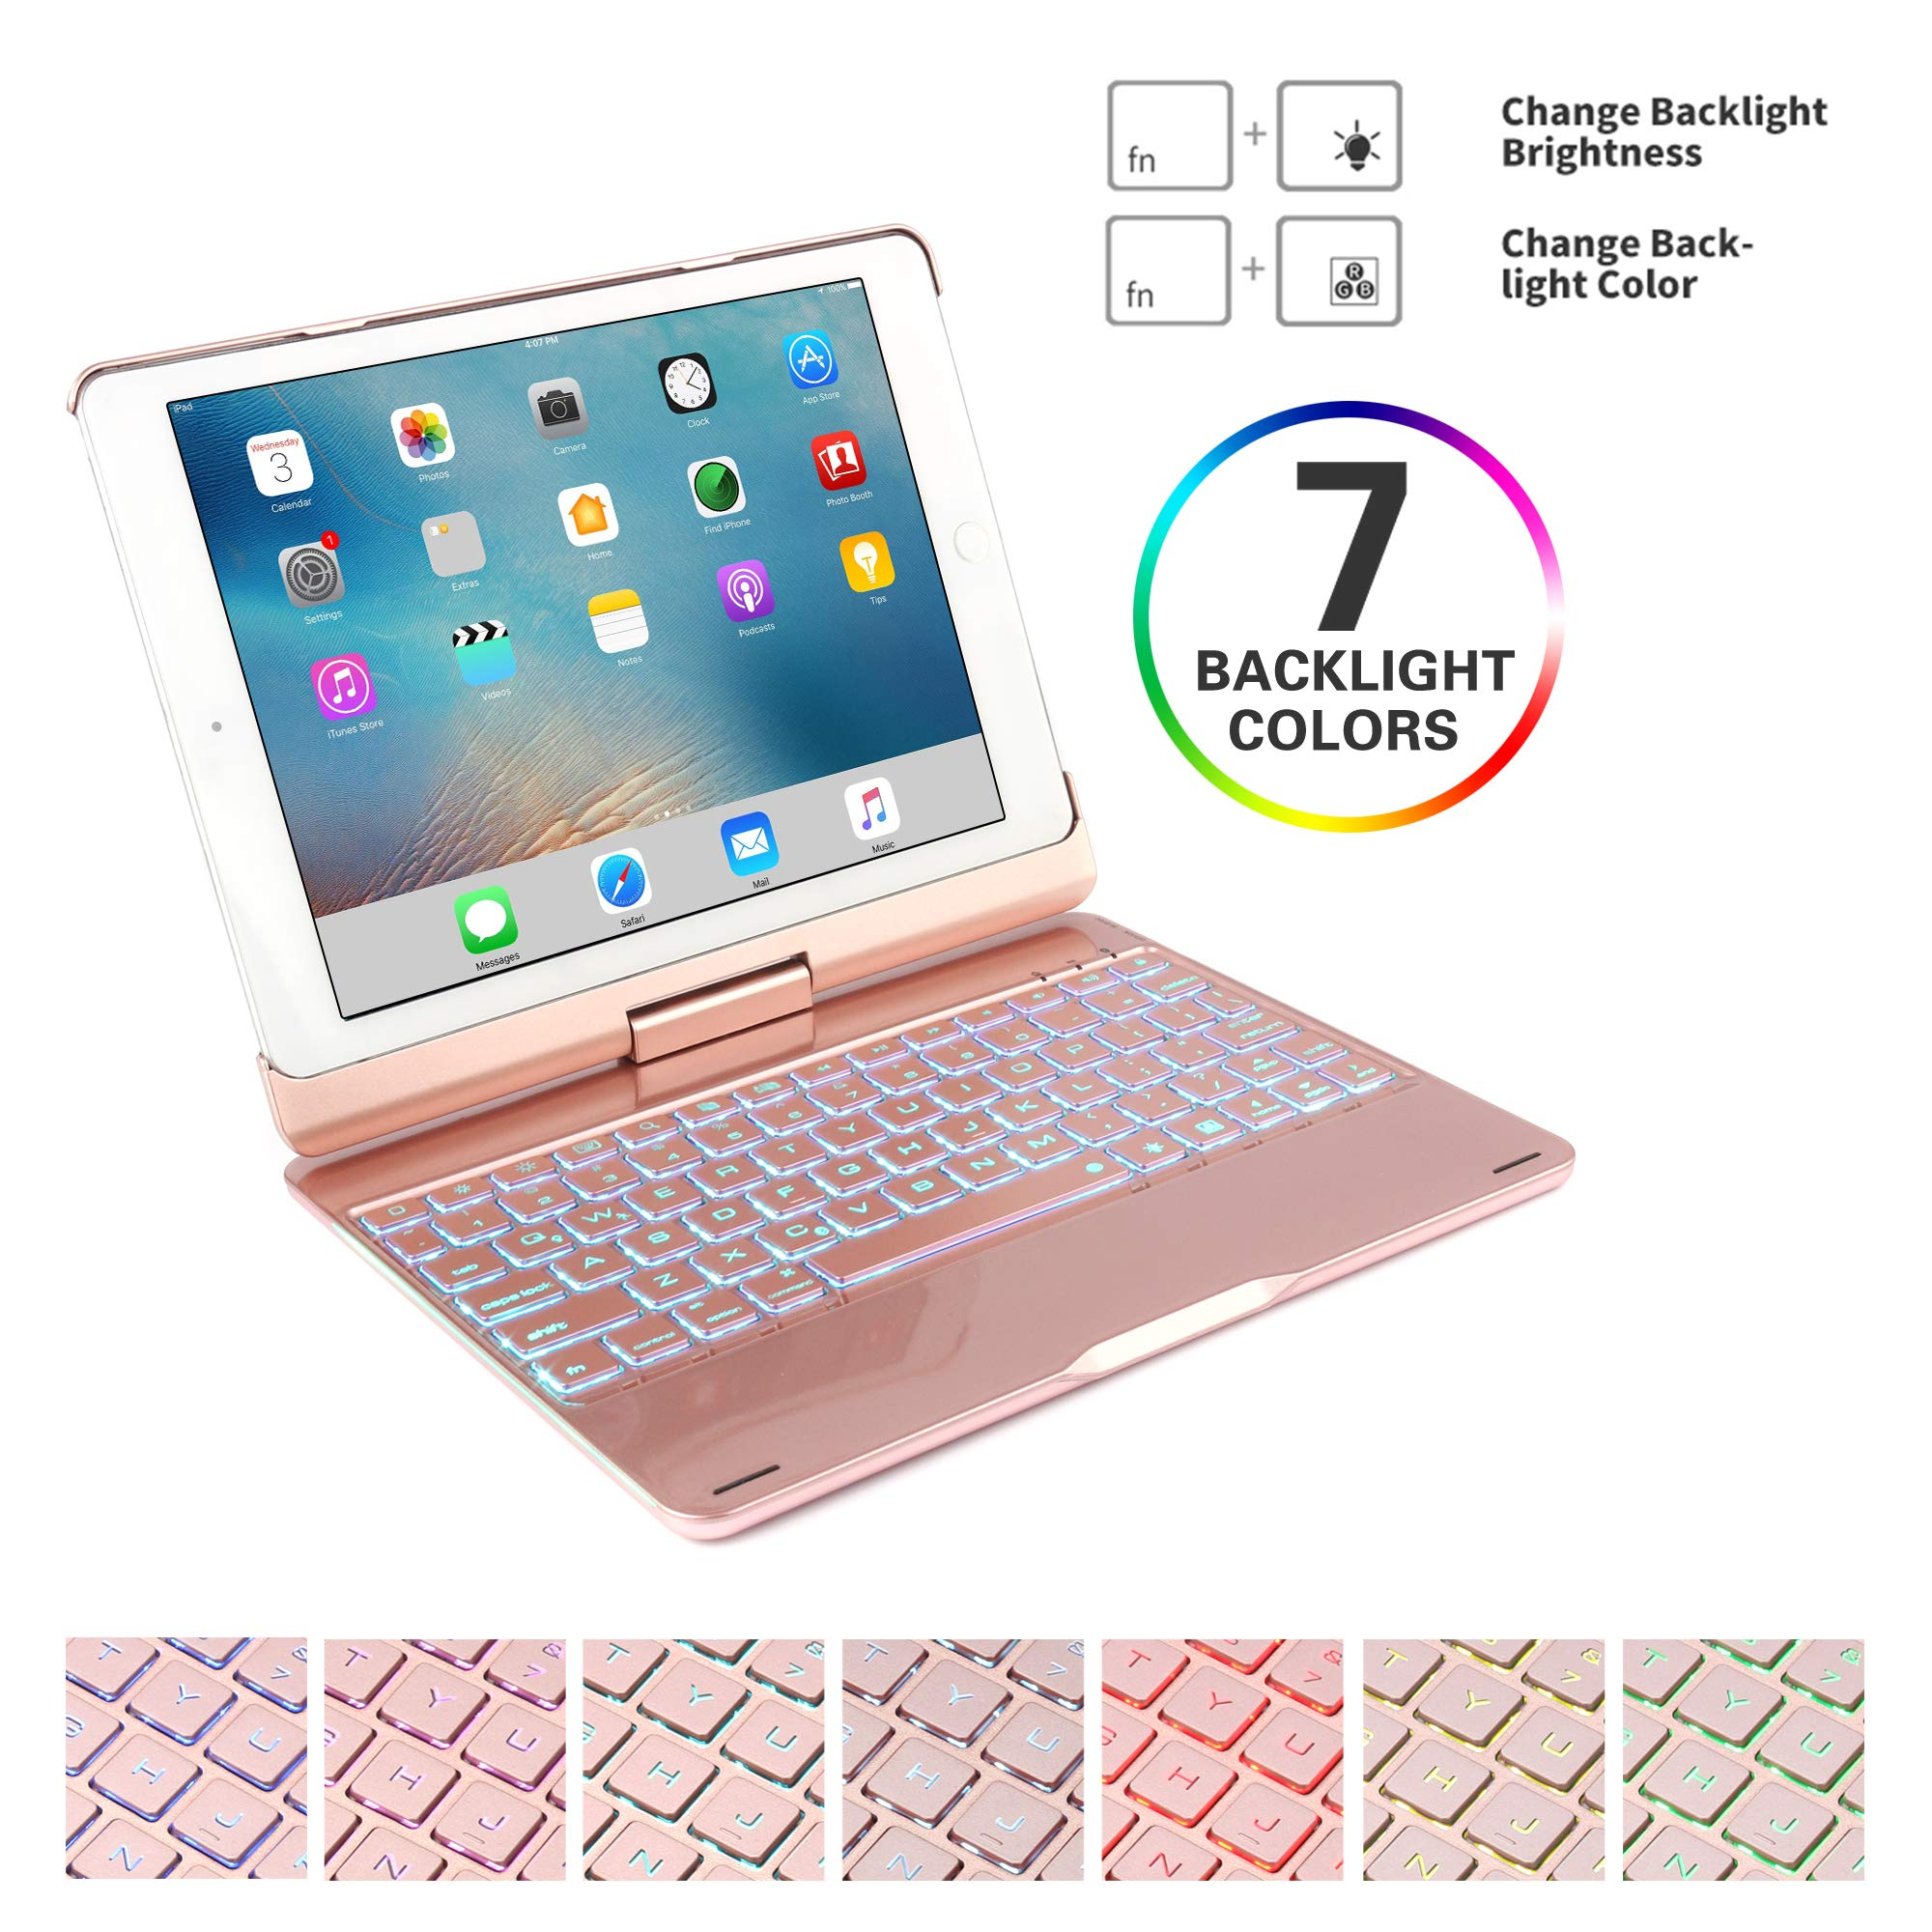 Universal Office Tablet Bluetooth Keyboard 7 Color Backlight Breathing Marquee Chengl Portable Bluetooth Keyboard